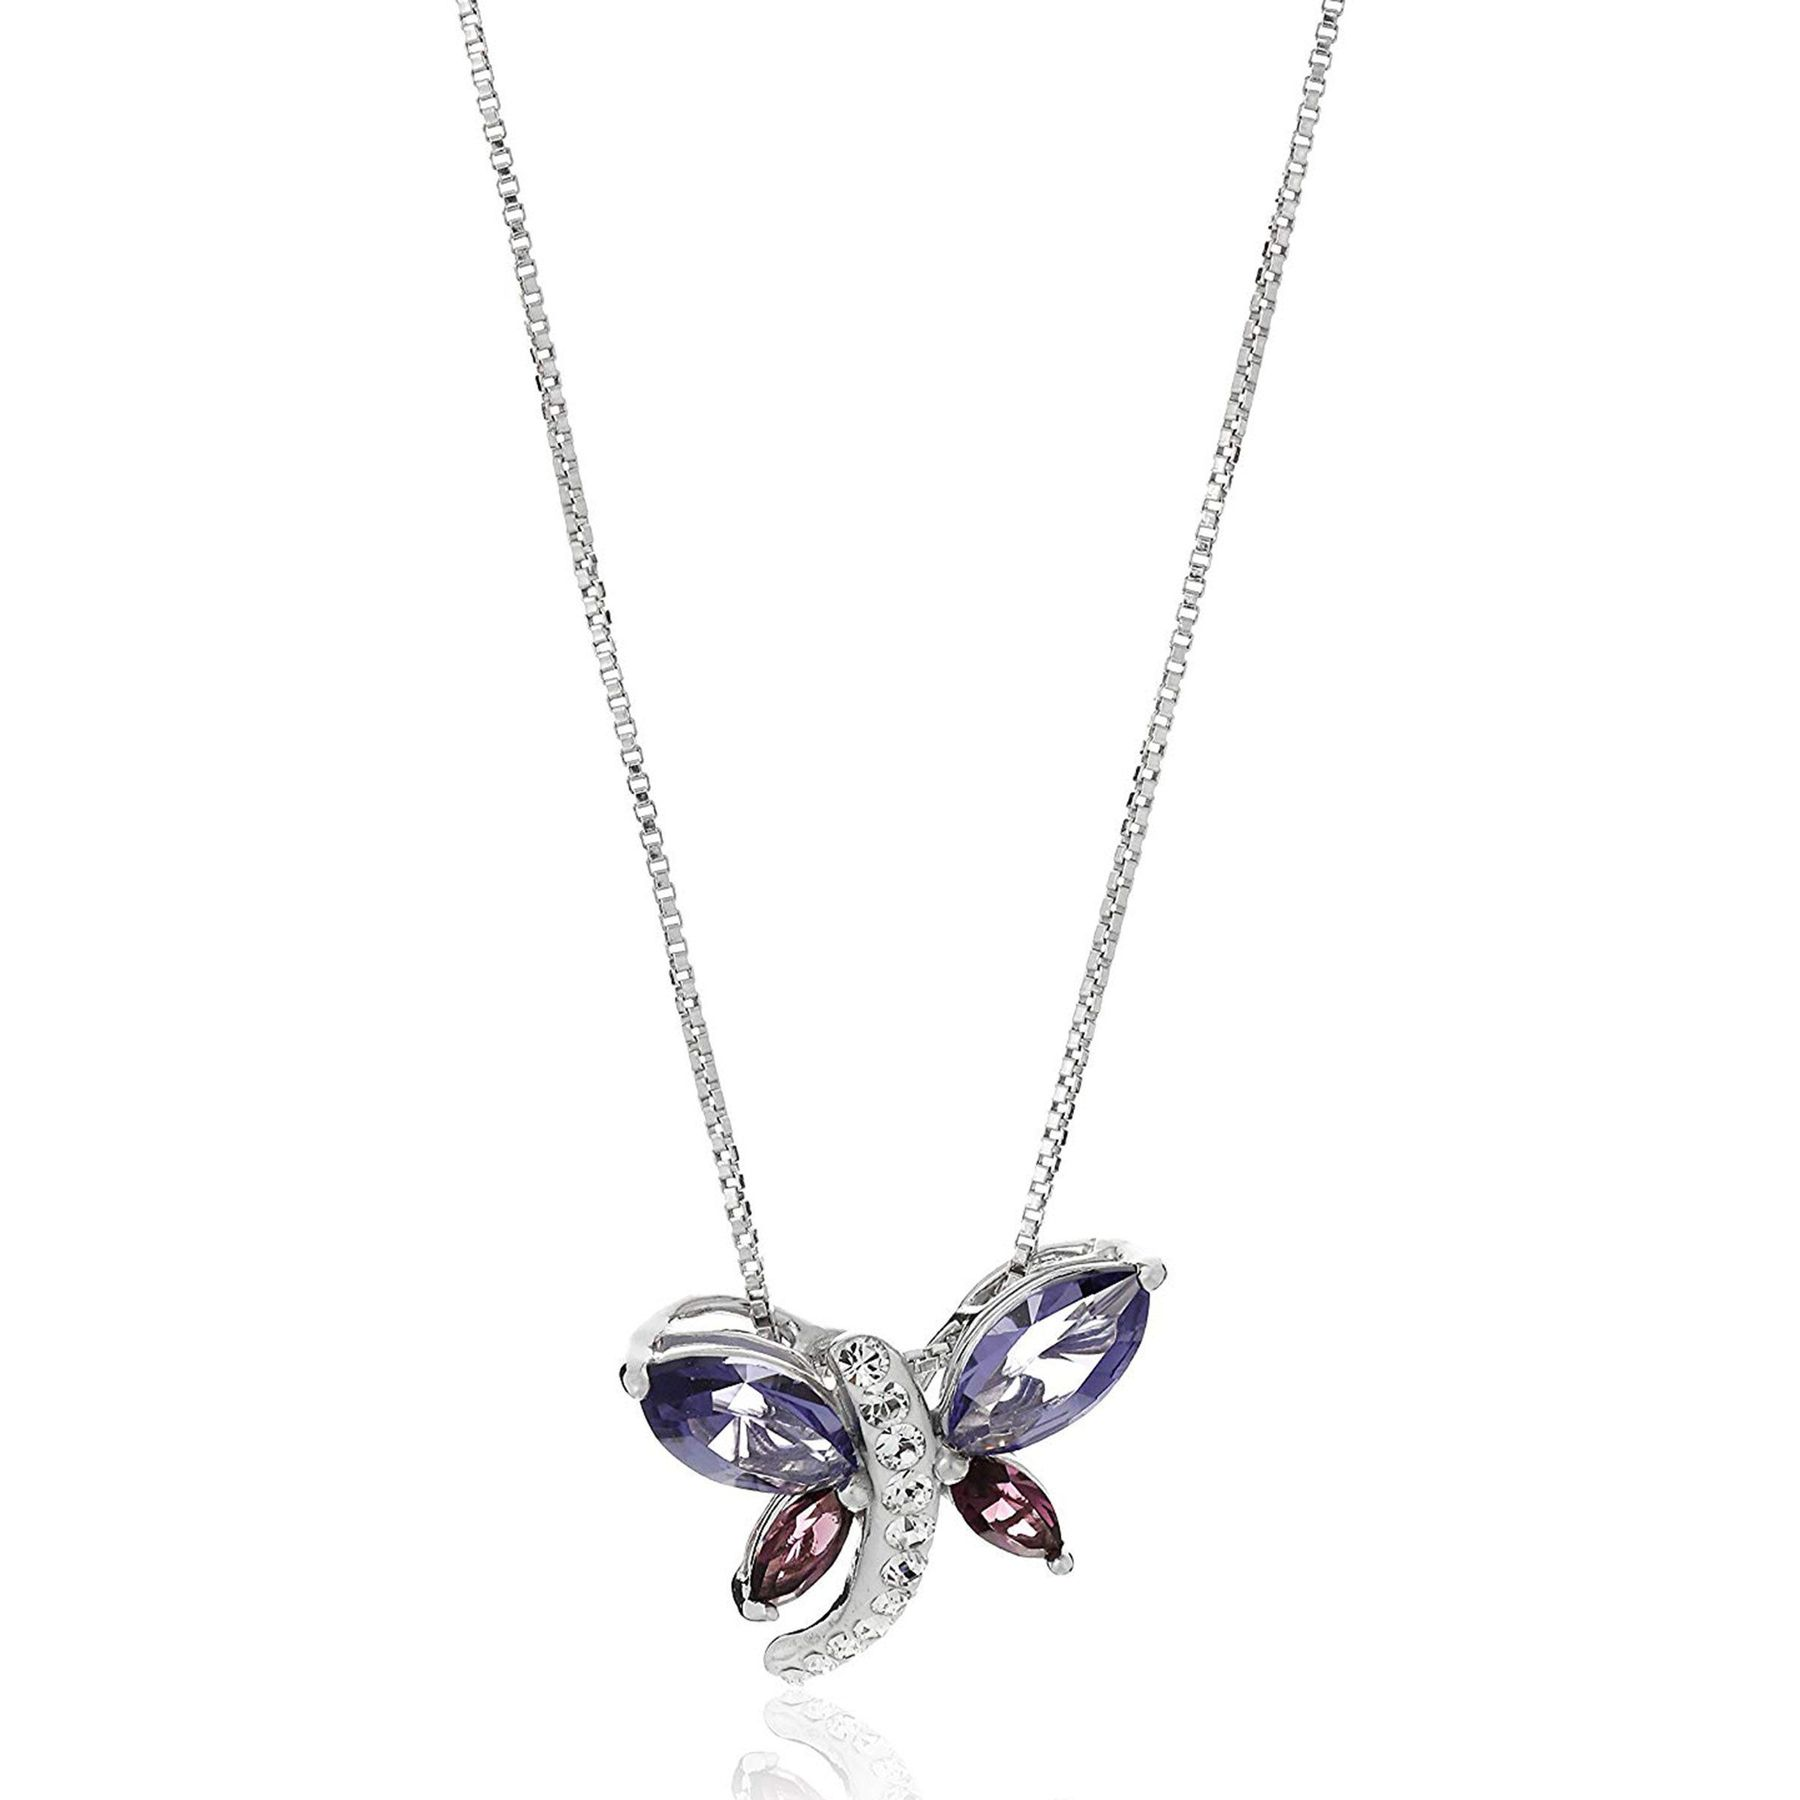 8a53f9858e890 Swarovski Dragonfly Necklace - Image Of Necklace